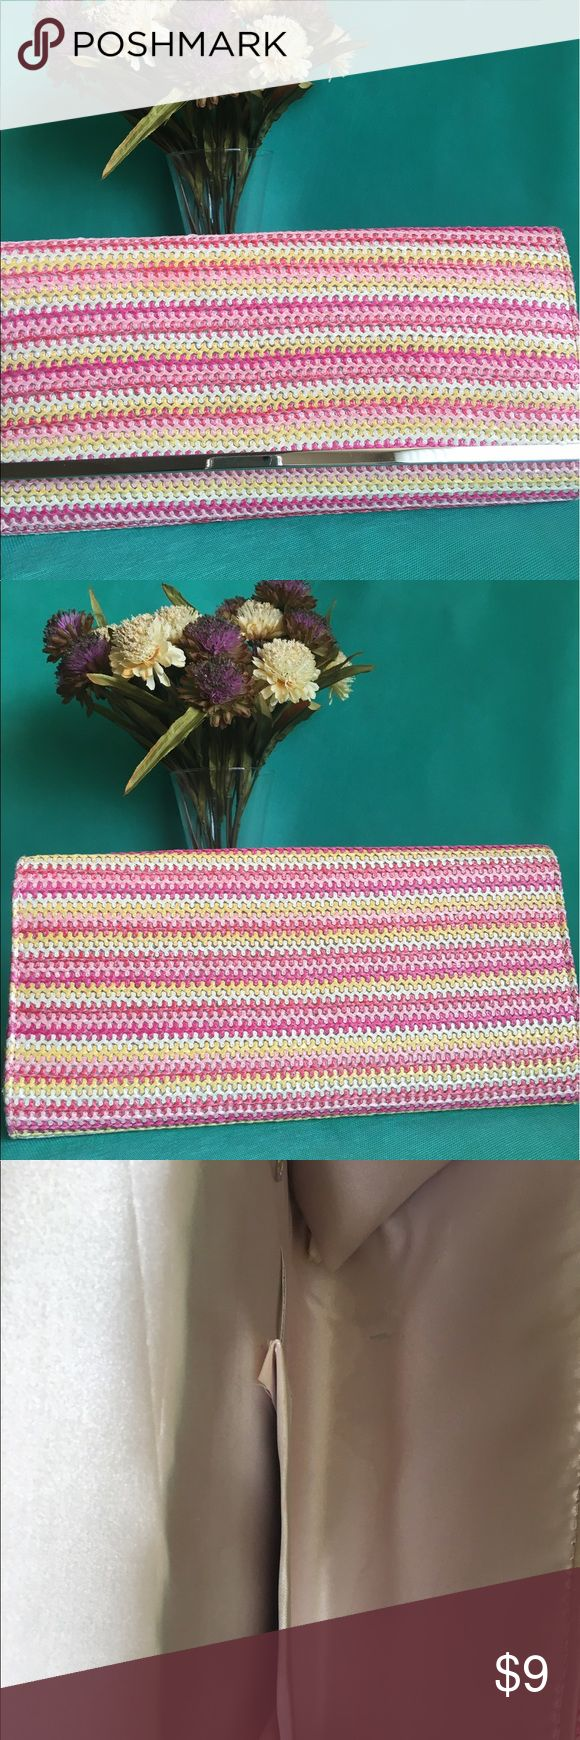 2 for $16- pink striped clutch bag Used once. The smallest imperfect in side the bag. Does not come with a strap but has the ability to have one attached.  Really cute Bags Clutches & Wristlets